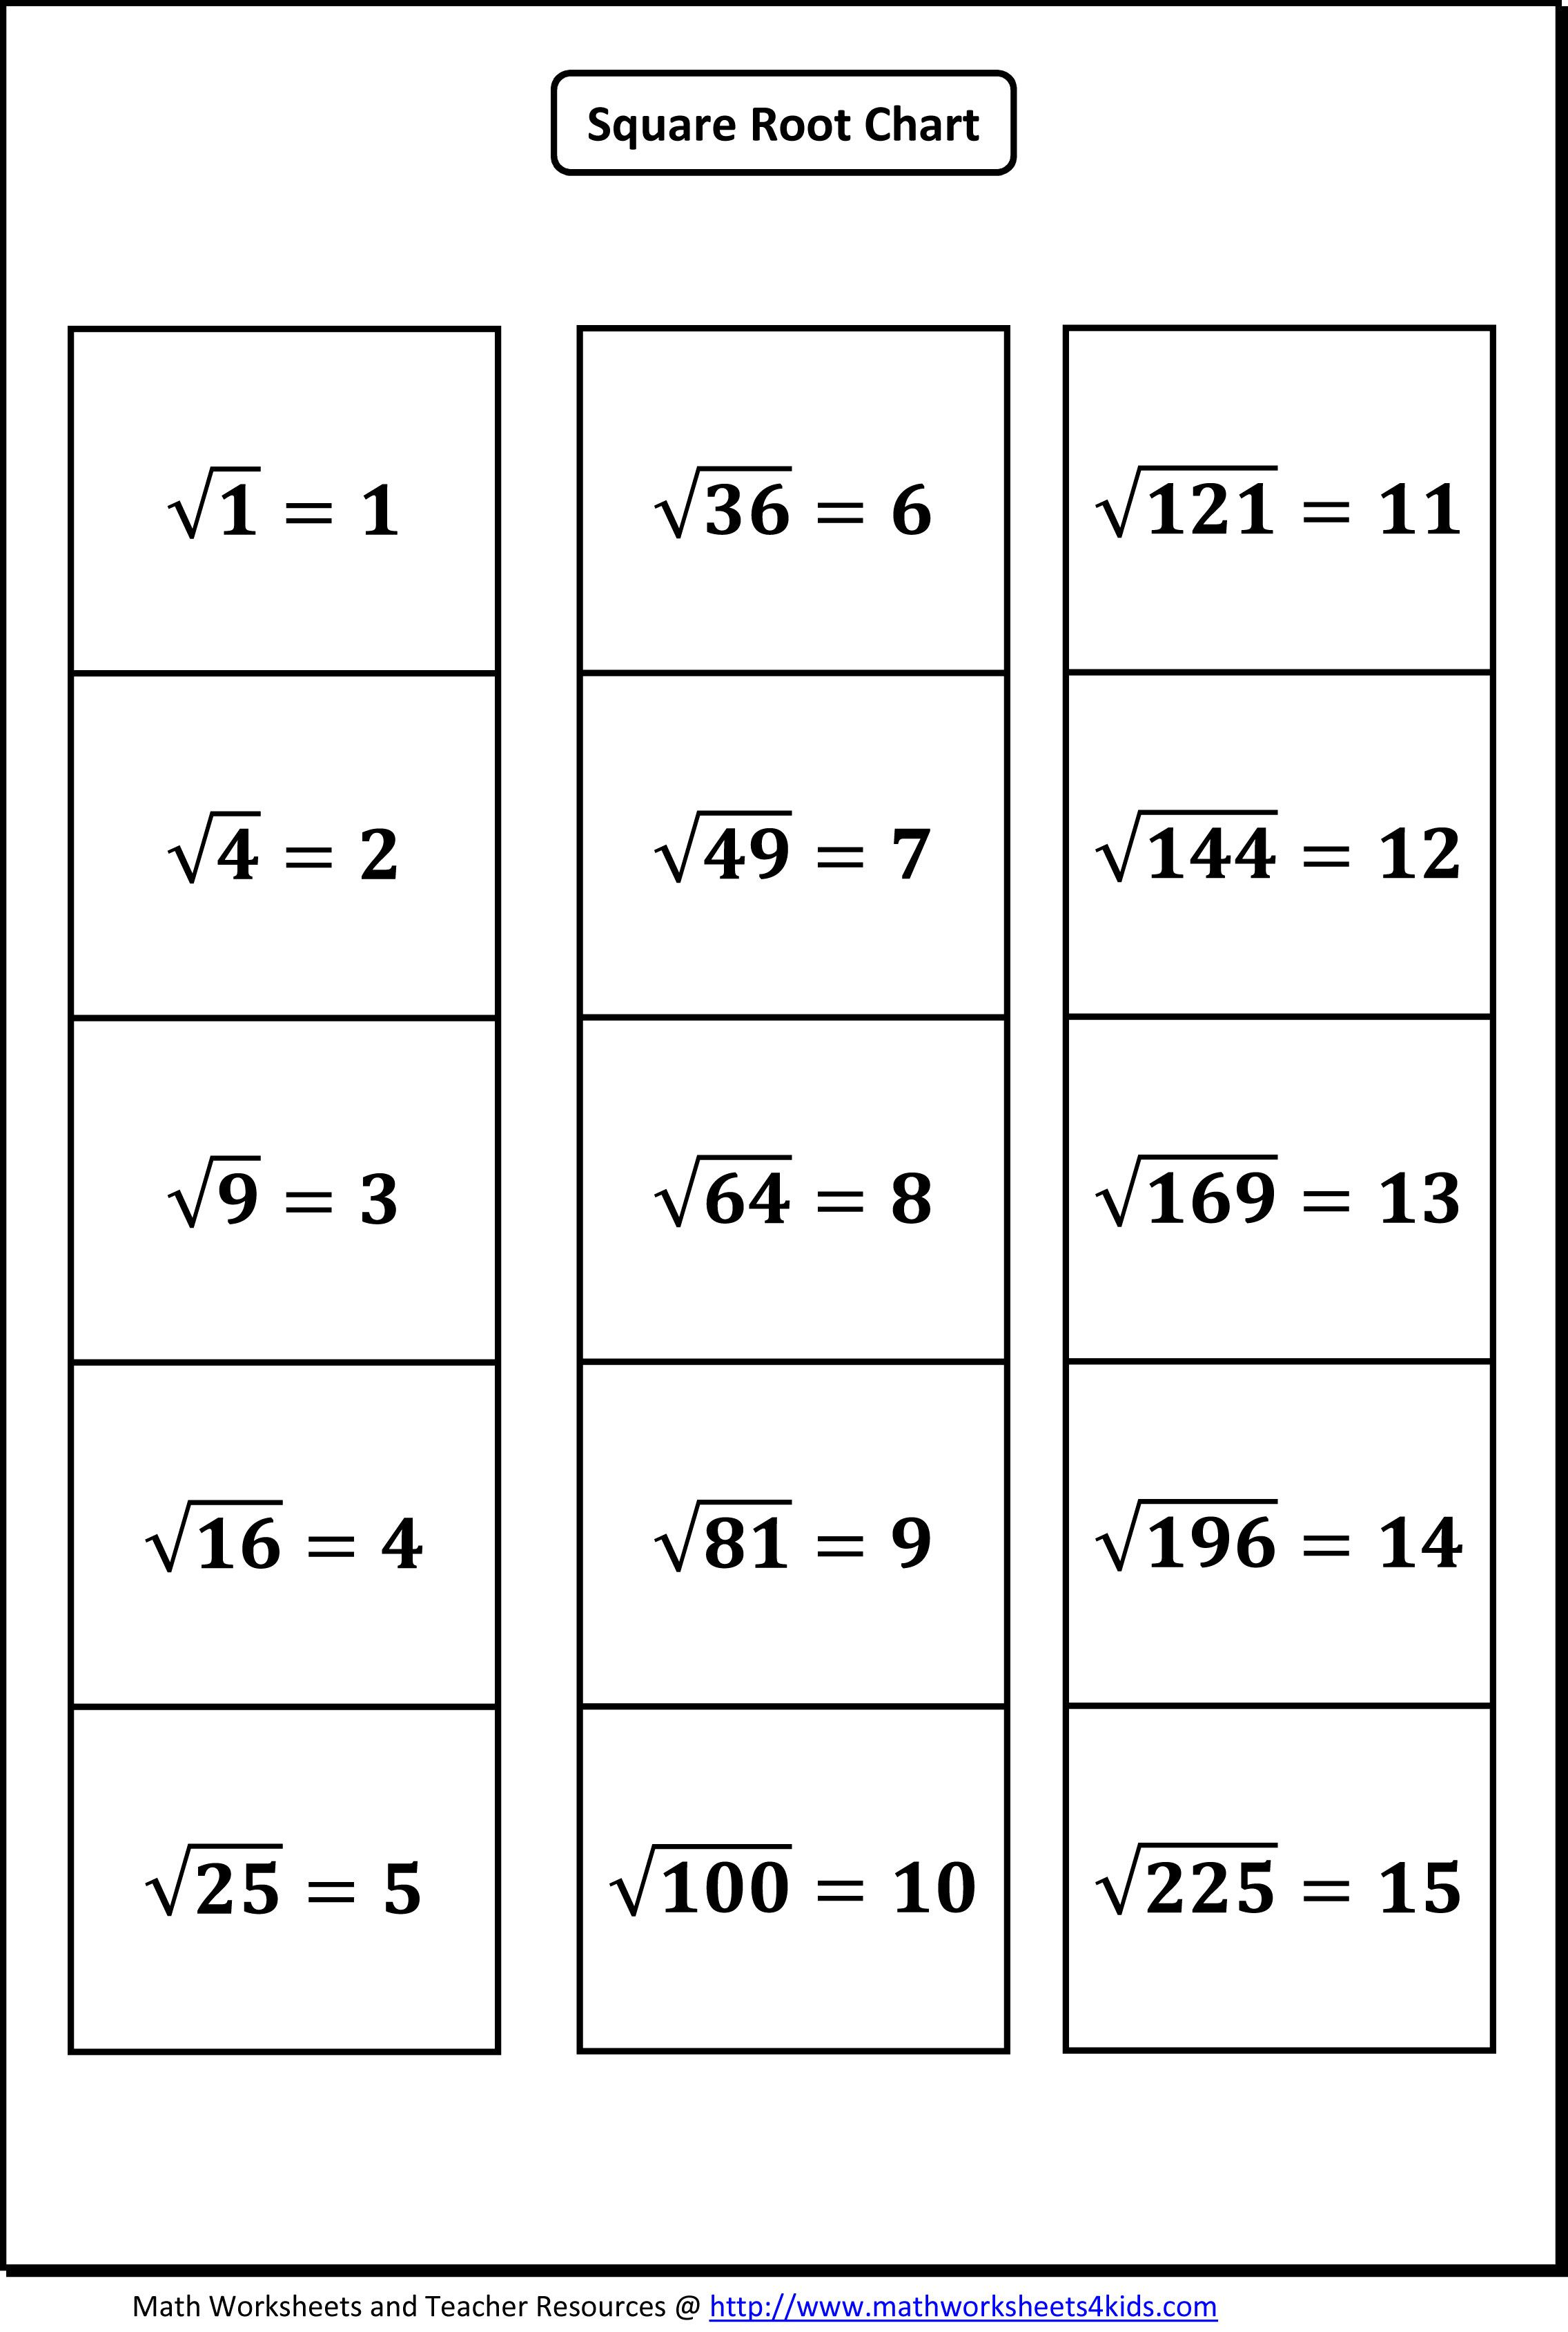 Square root worksheets Find the square root of whole numbers – Fractions of a Whole Worksheet